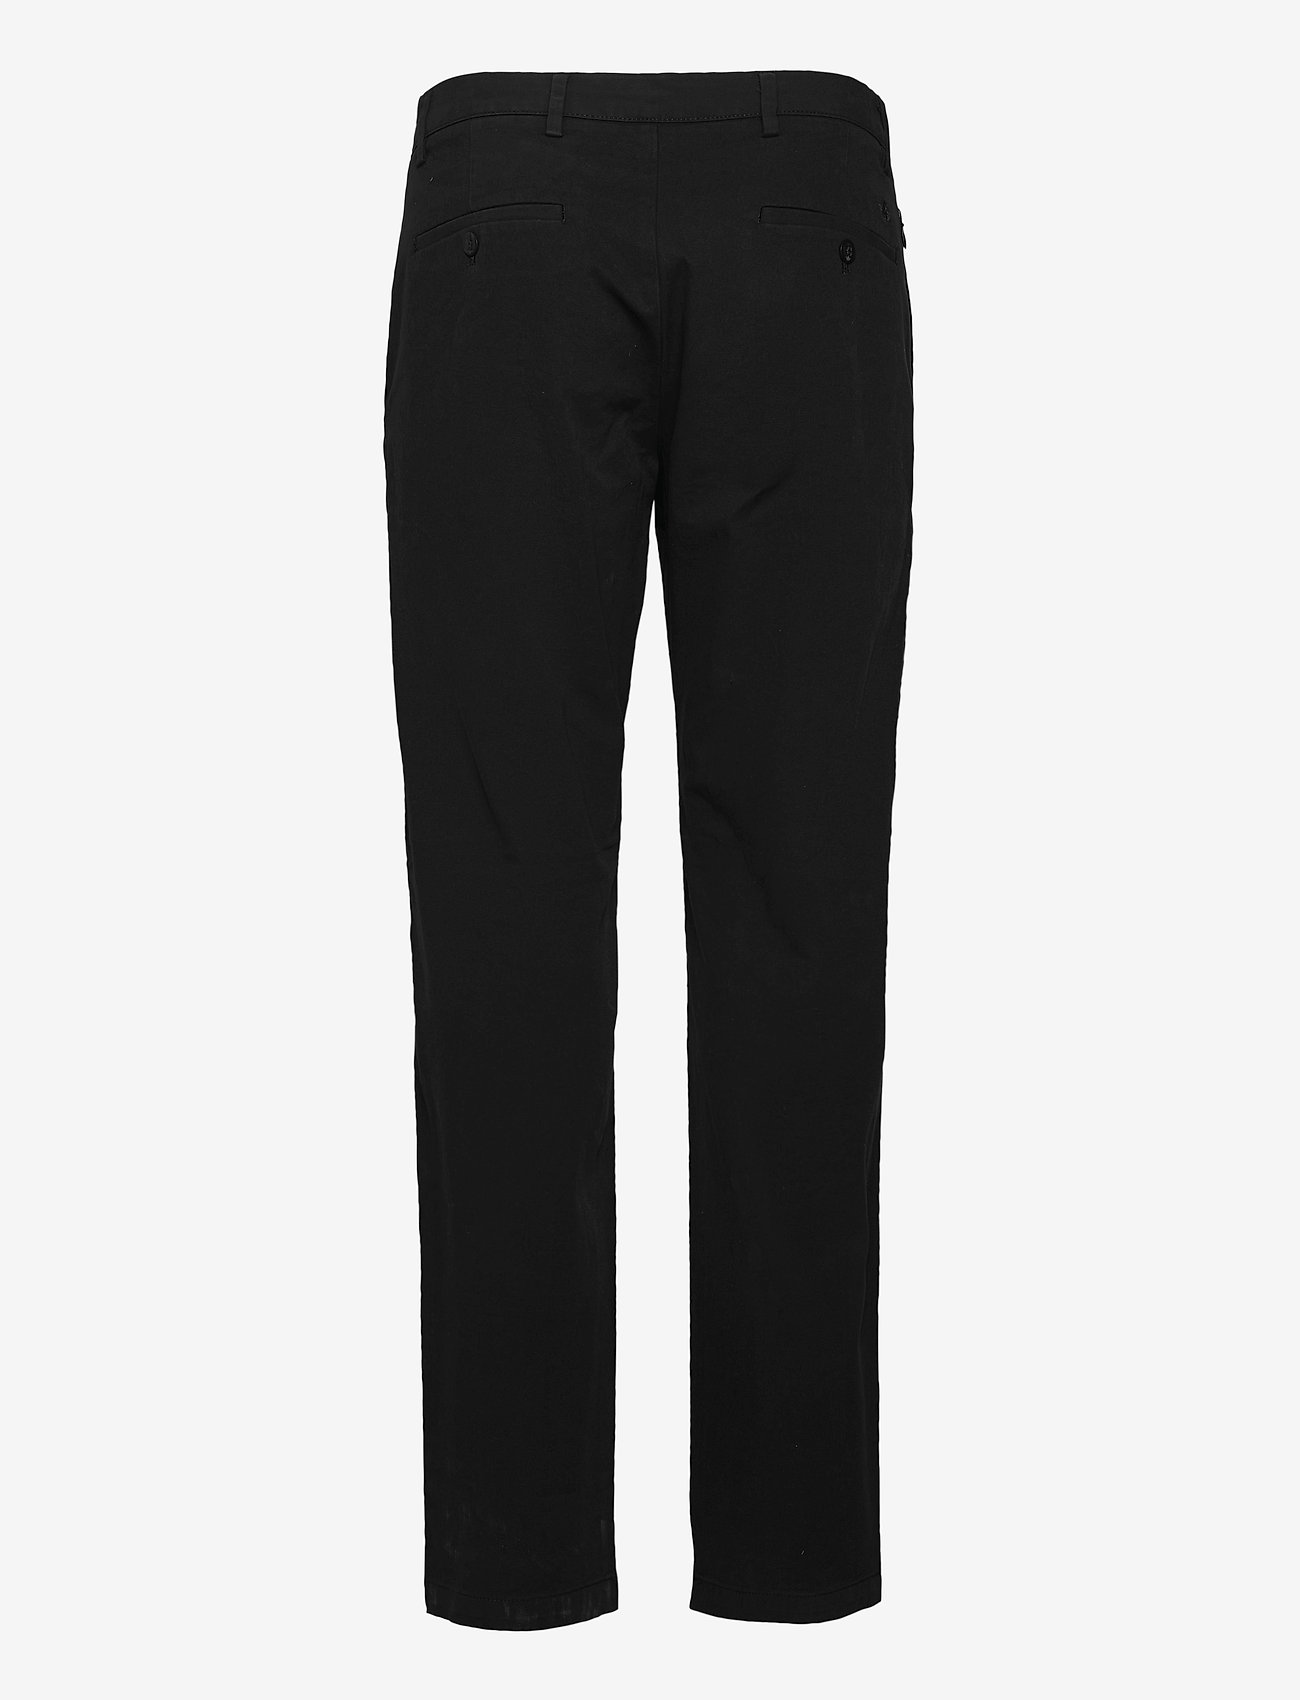 Dockers - SMART 360 CHINO STRAIGHT BLACK - chinosy - blacks - 1